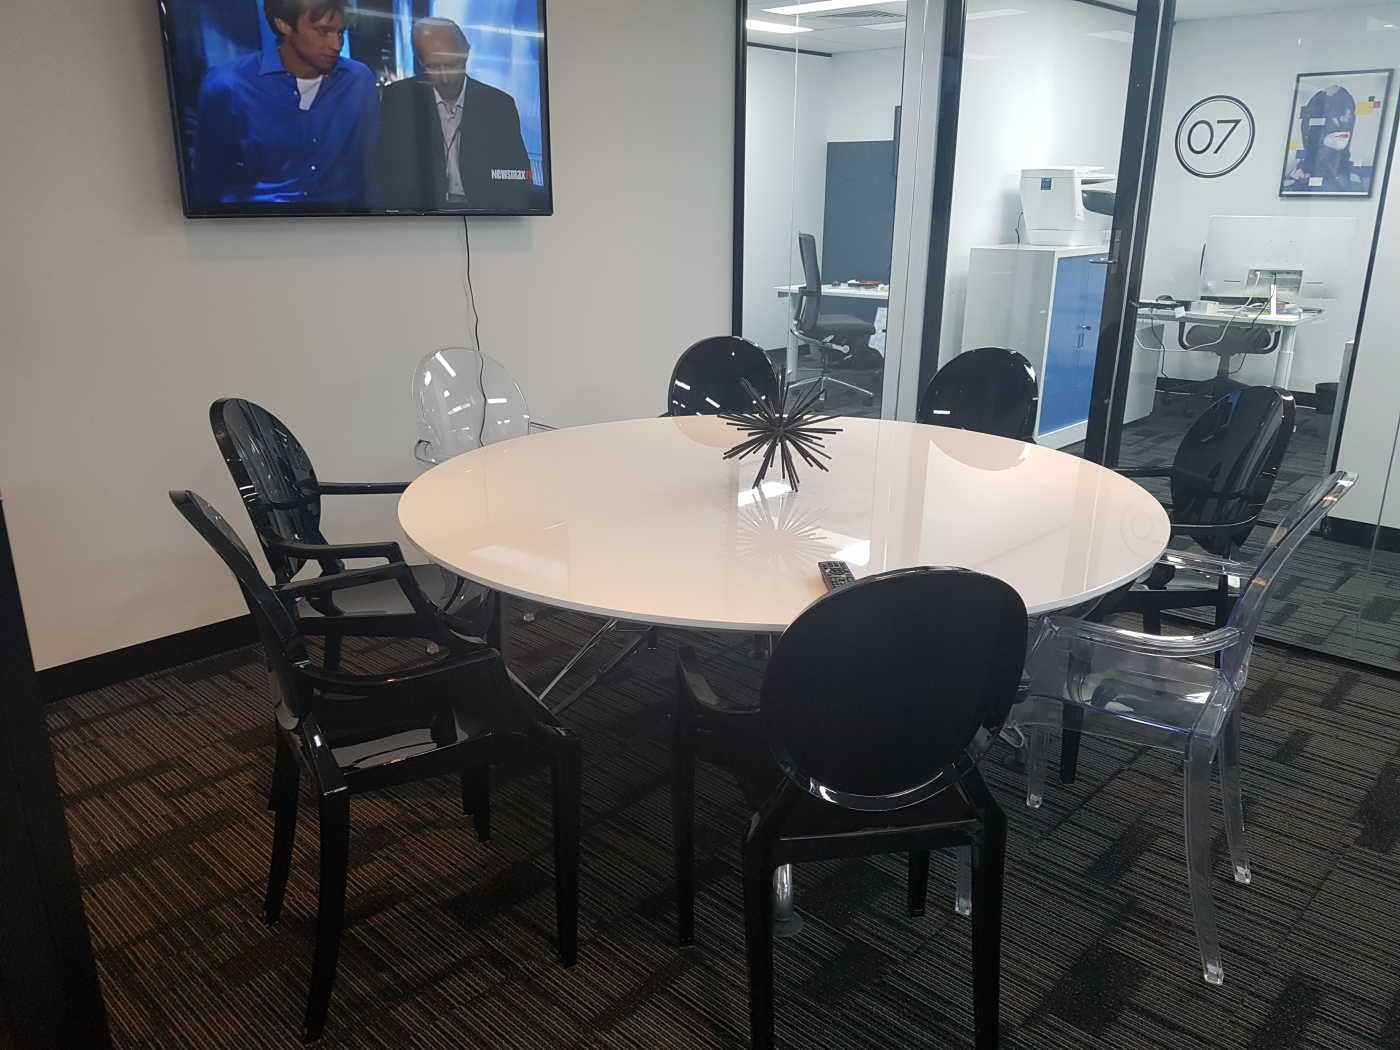 Boardroom, meeting room at Anytime Offices Botany, image 4